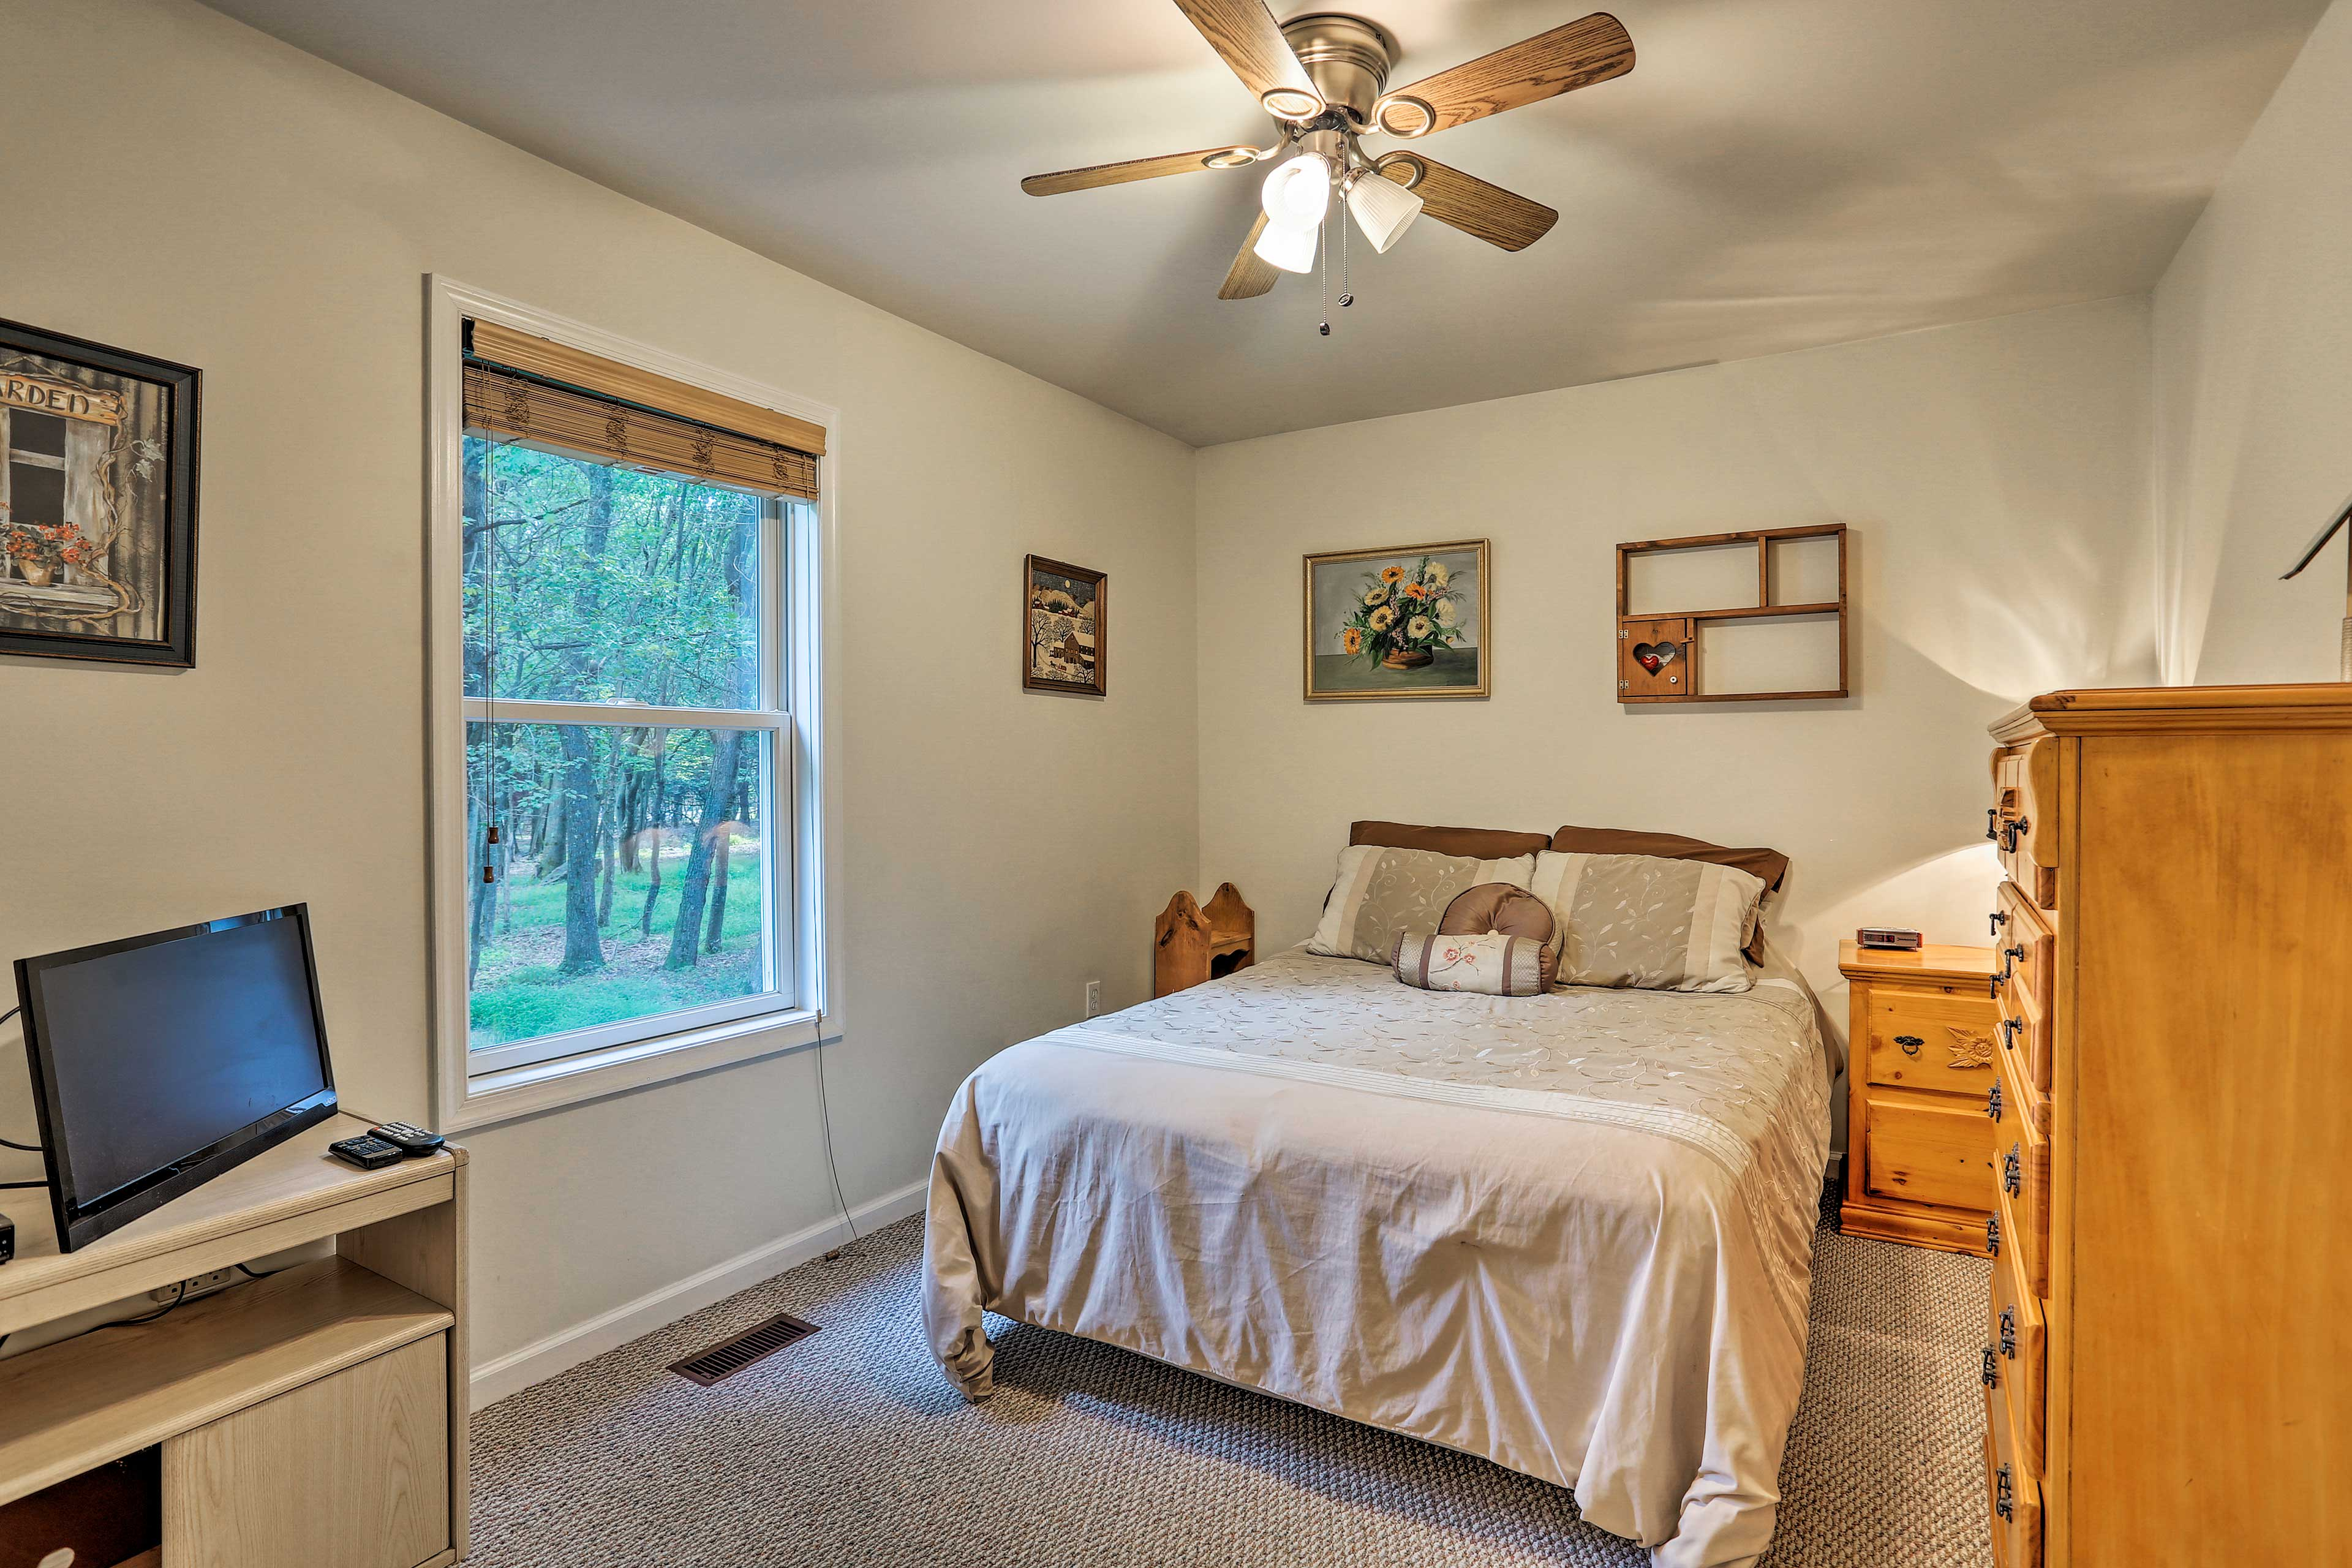 Two guests can sleep comfortably in this queen bed.